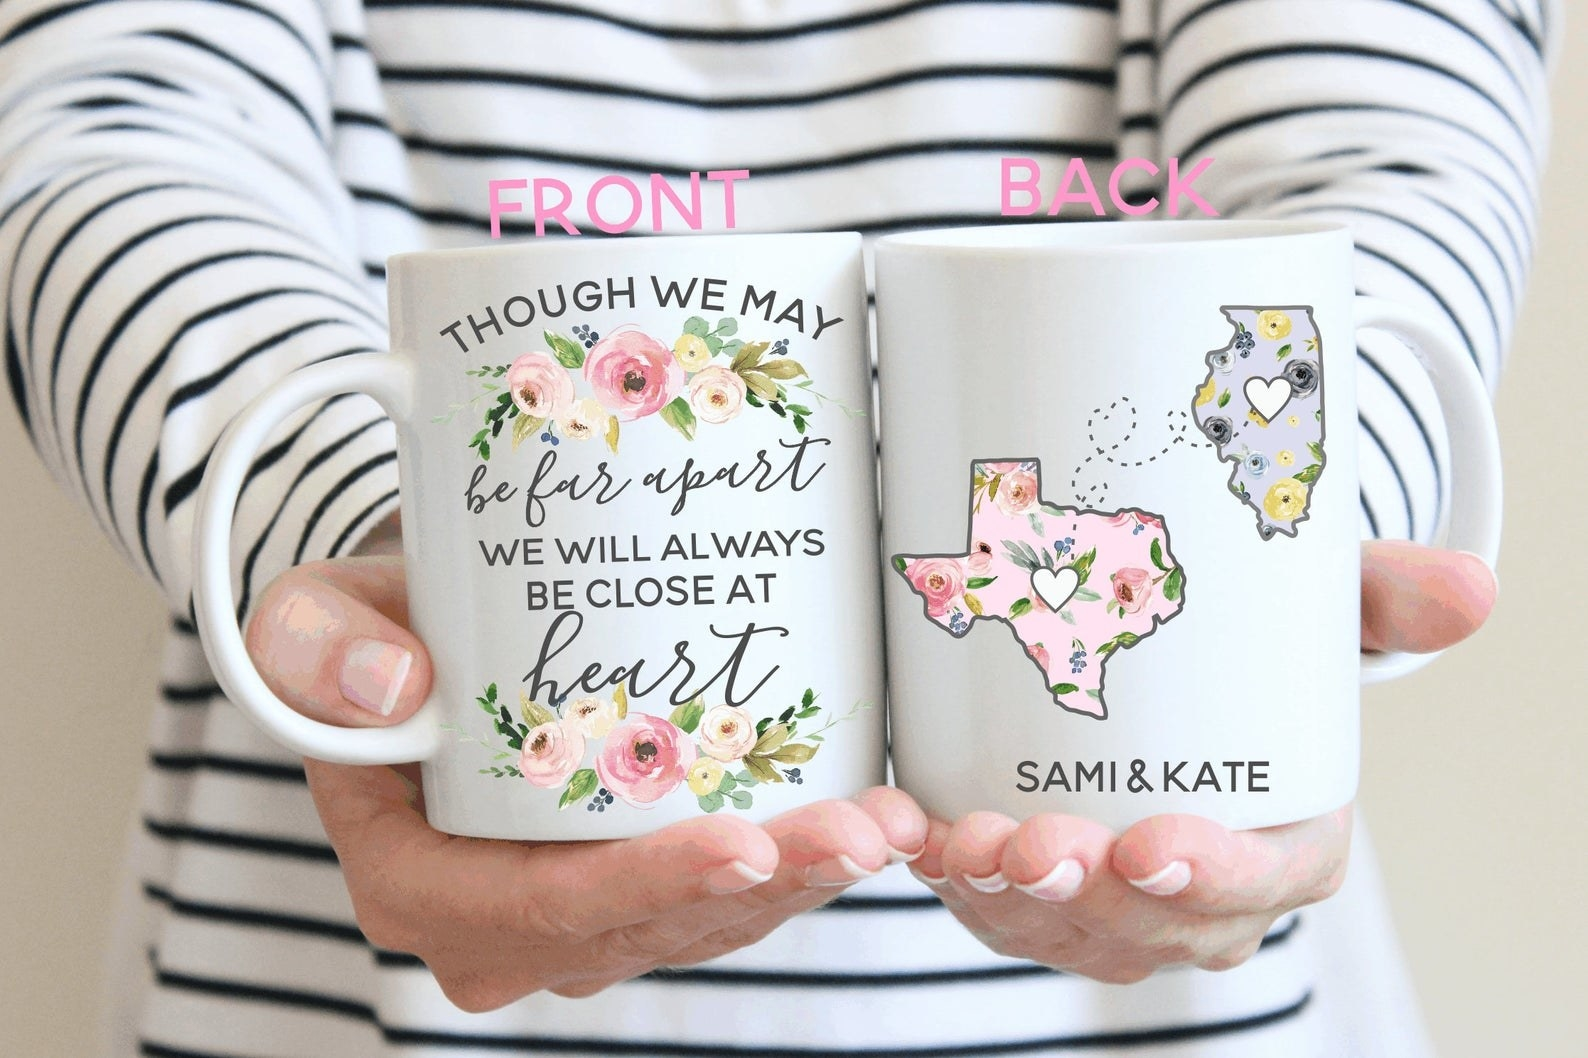 """A mug that says """"though we may be far apart, we will always be close at heart"""" on the front, and a two states with hearts in them and people's names connecting them together on the back"""